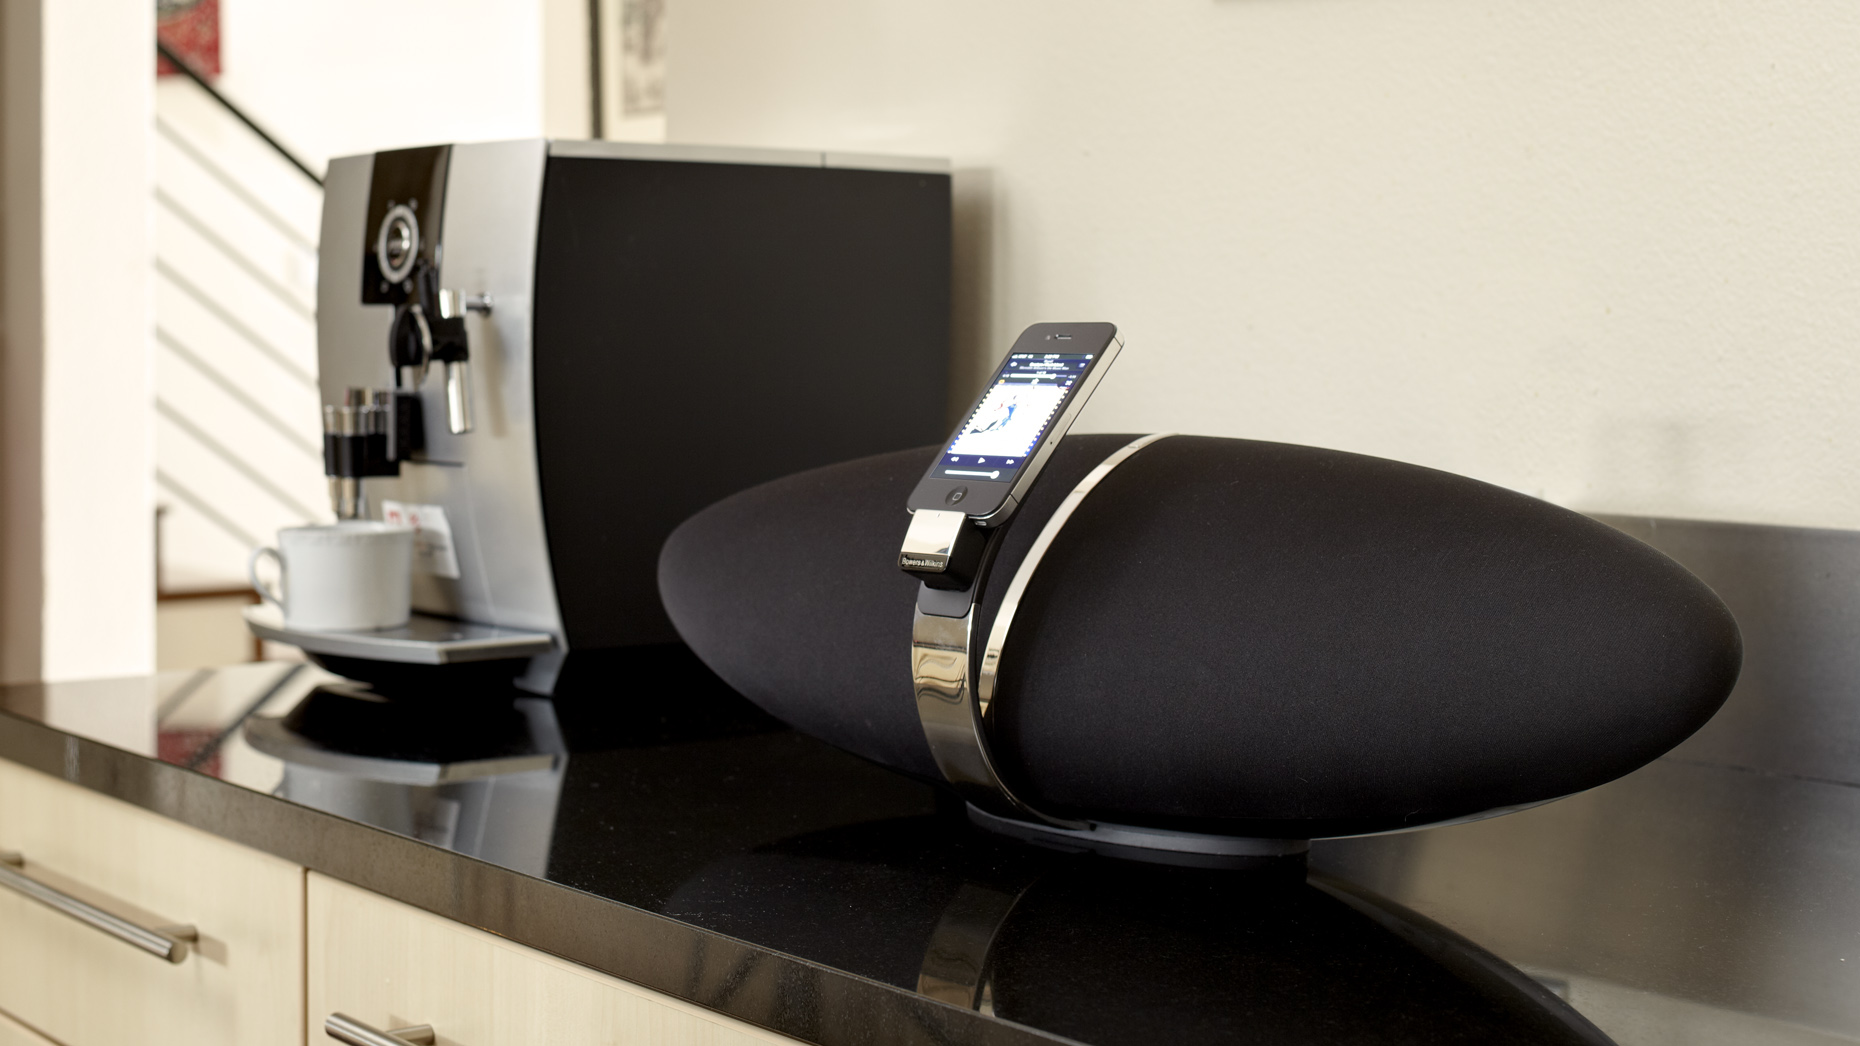 alex_hayden_electric_933